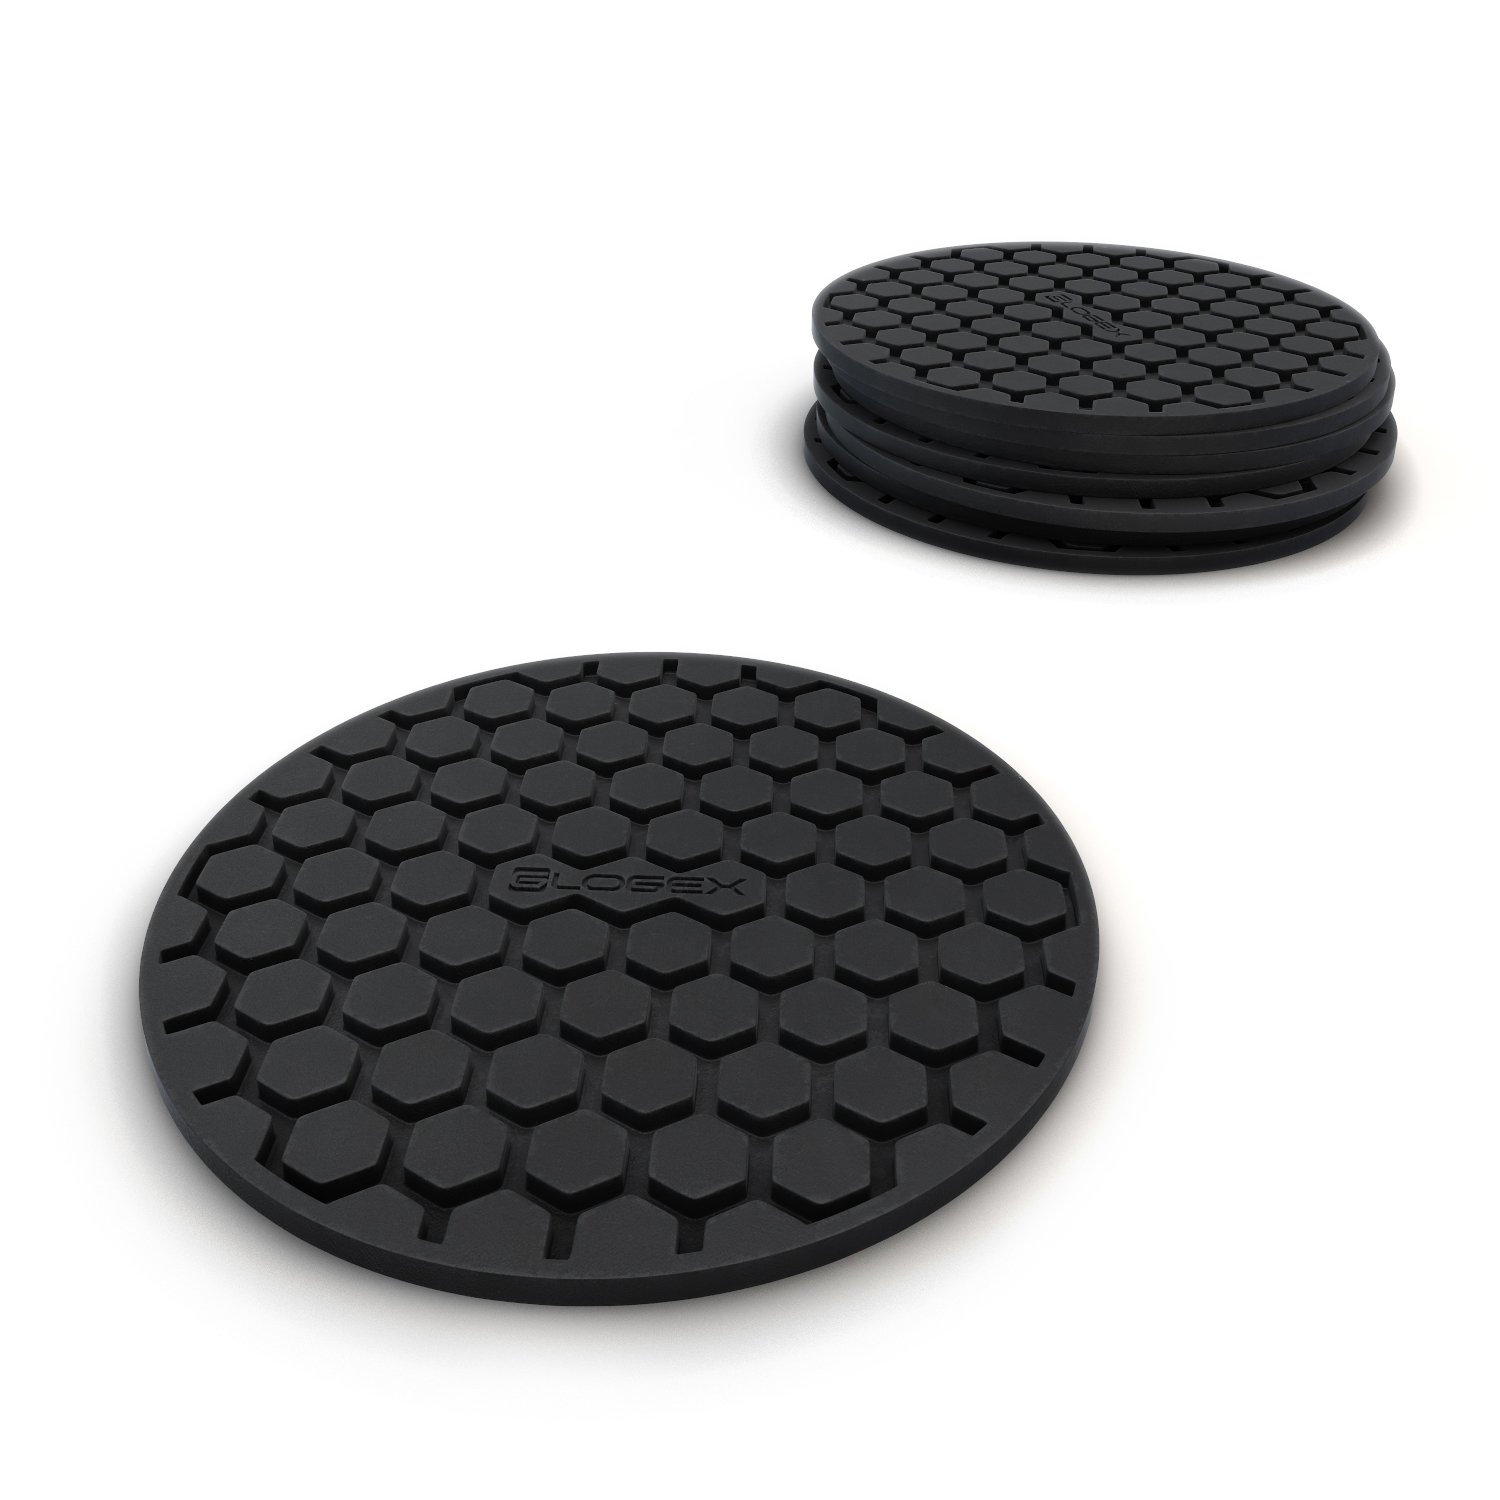 amazoncom amazing quality drink coaster set (pc) sleek modern  - amazoncom amazing quality drink coaster set (pc) sleek modern designprevents furniture damage absorbs spills and condensation